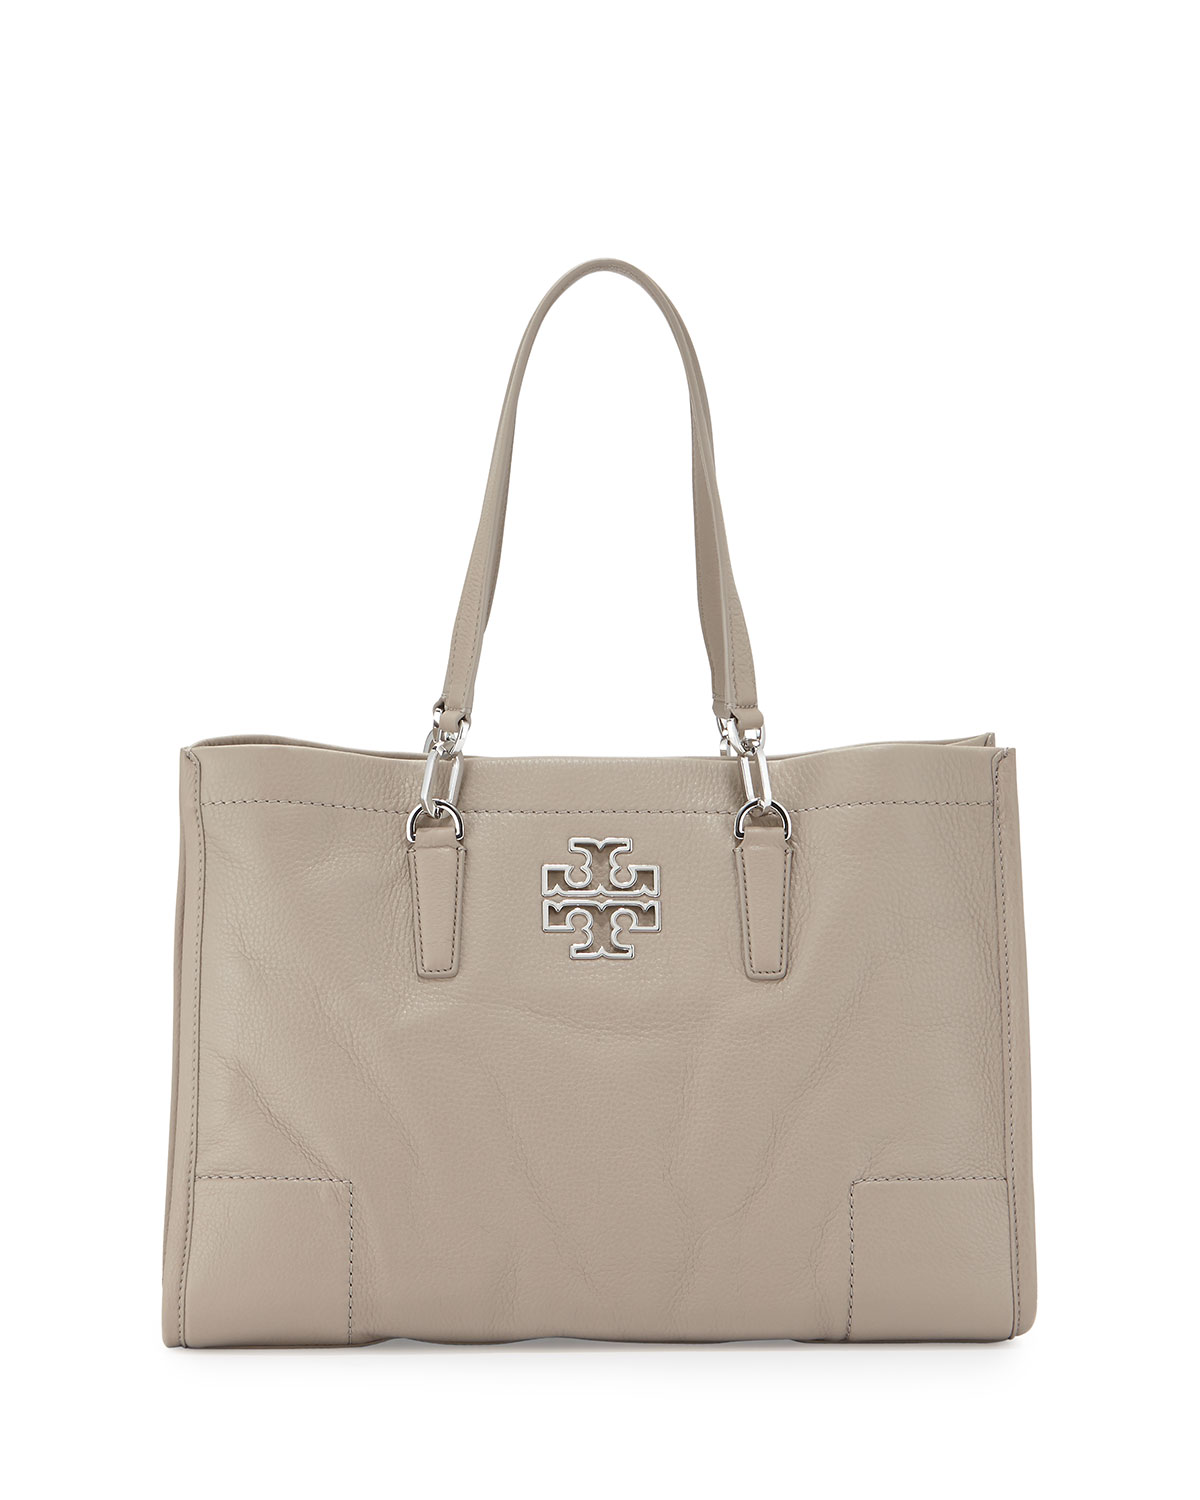 3aca6f160760 Tory Burch Britten Leather Tote Bag